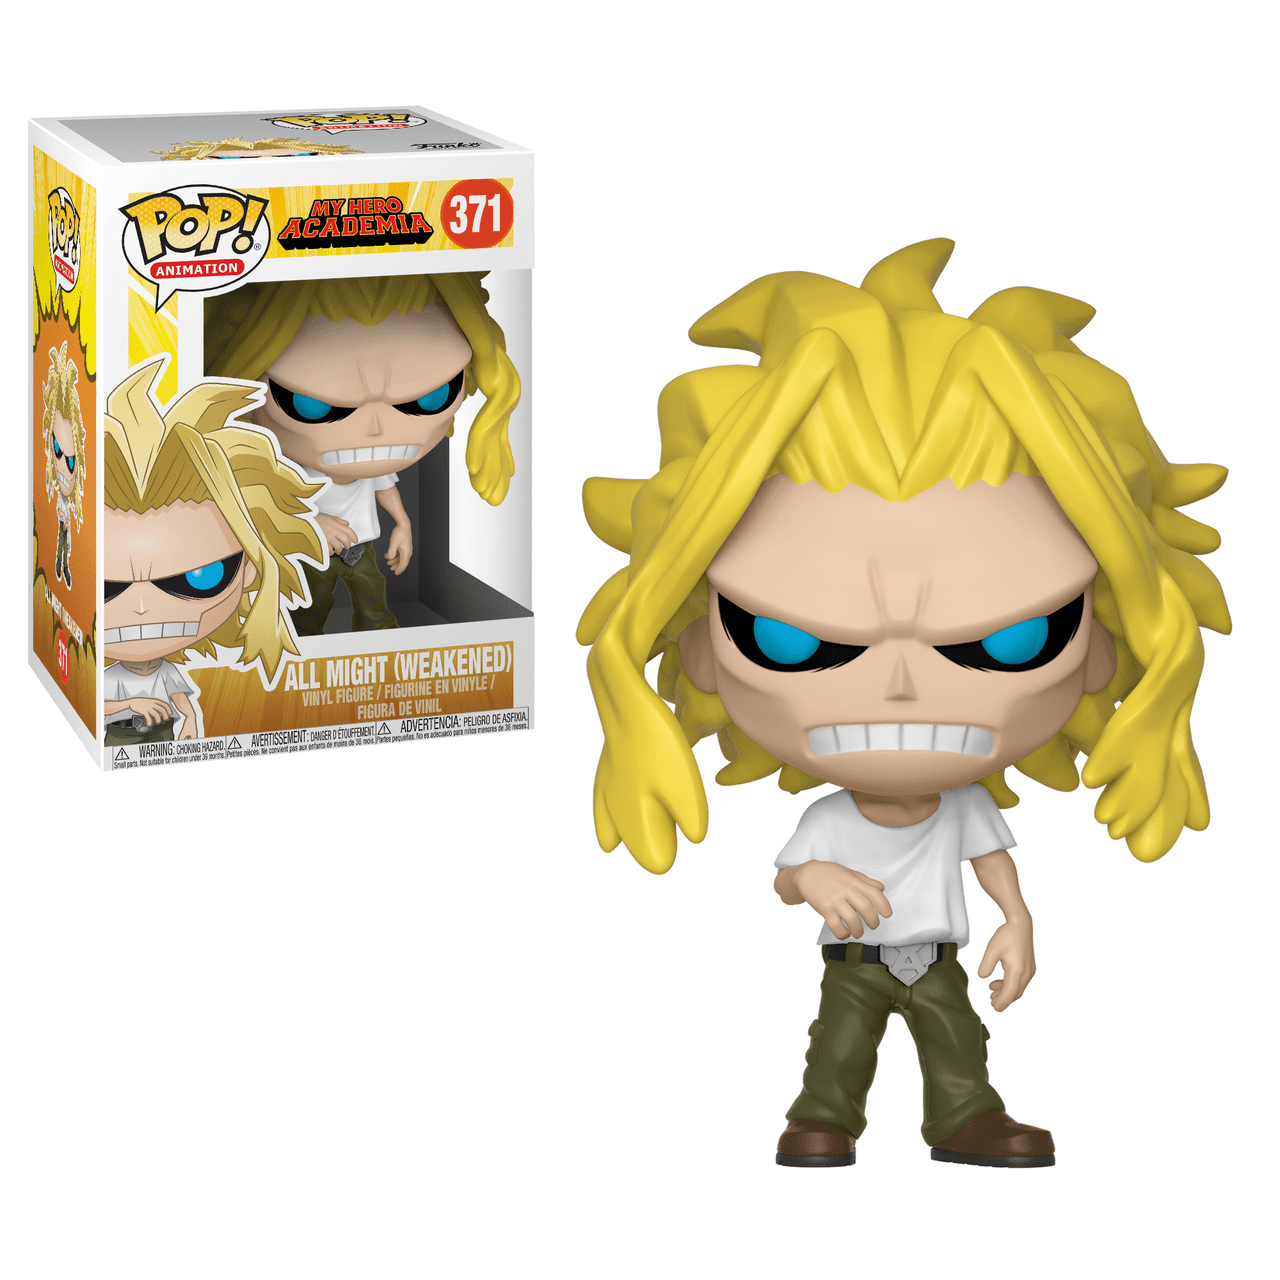 POP! Animation - My Hero Academia - All Might (Weakened)#371